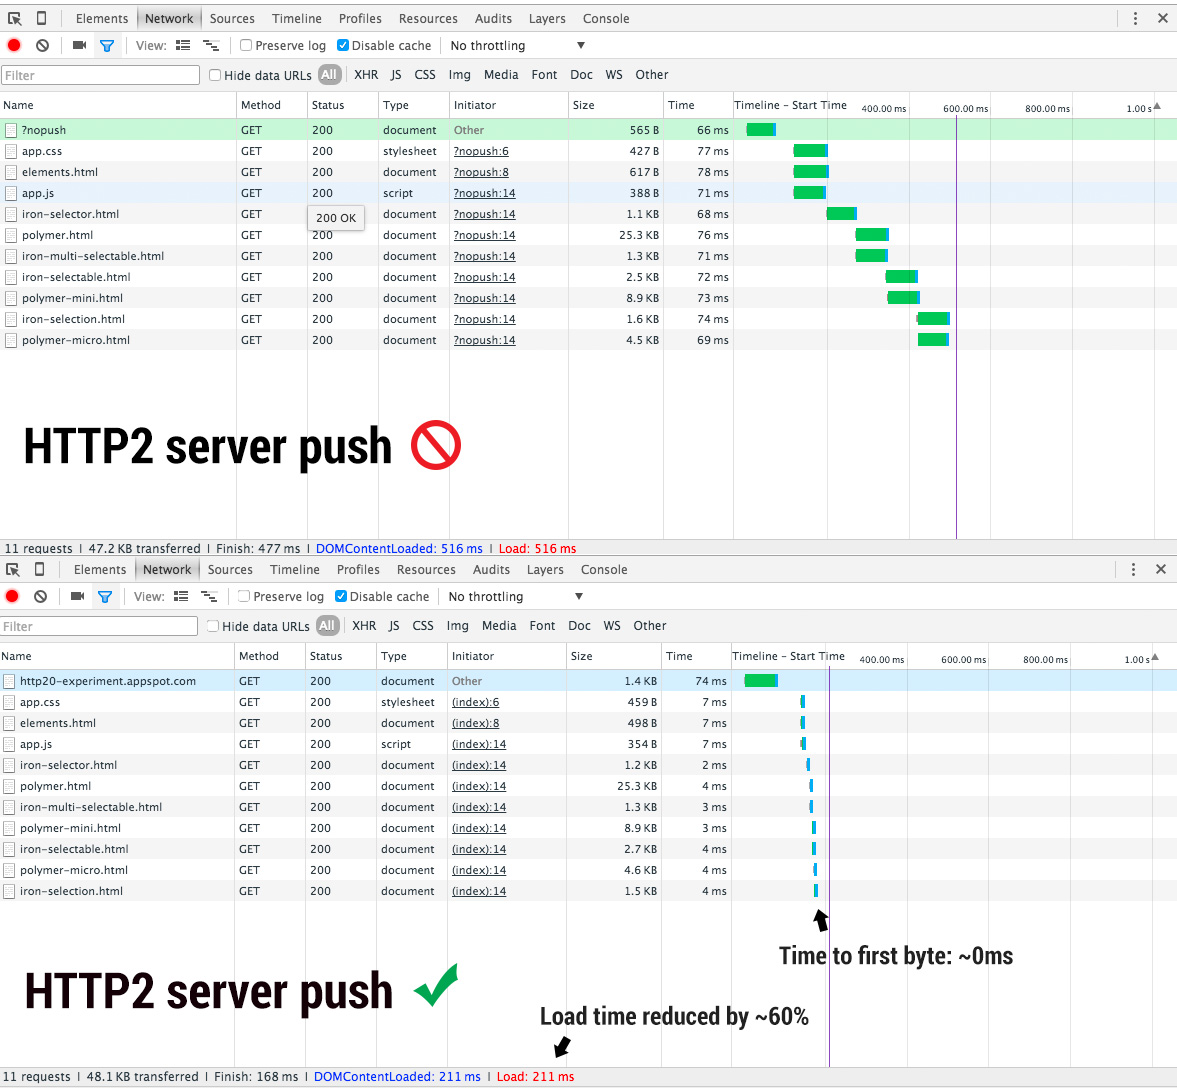 Effects of HTTP2 push performance